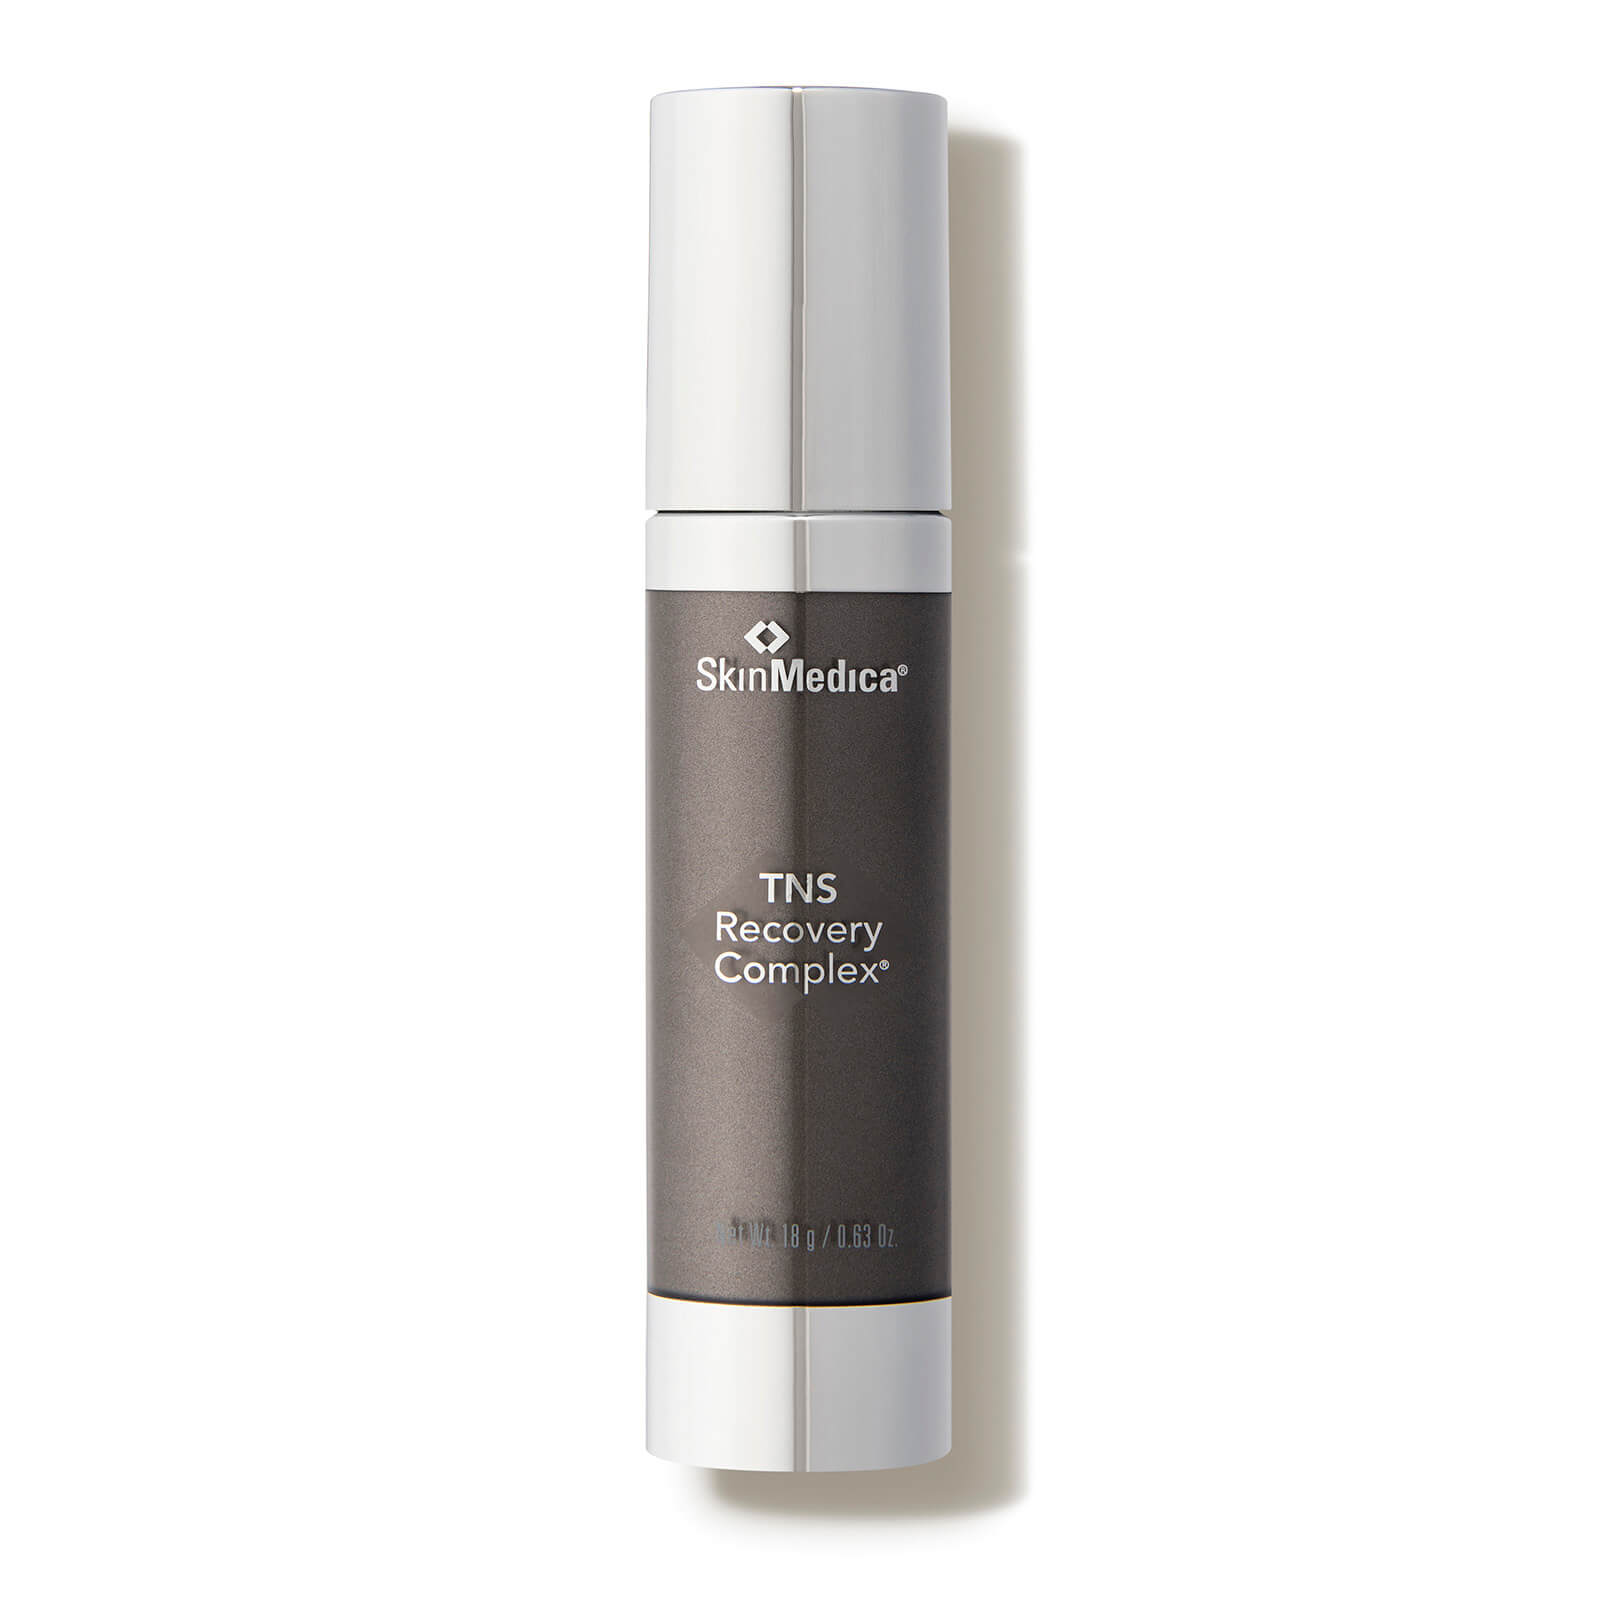 Watch a story about SKINMEDICA TNS RECOVERY COMPLEX